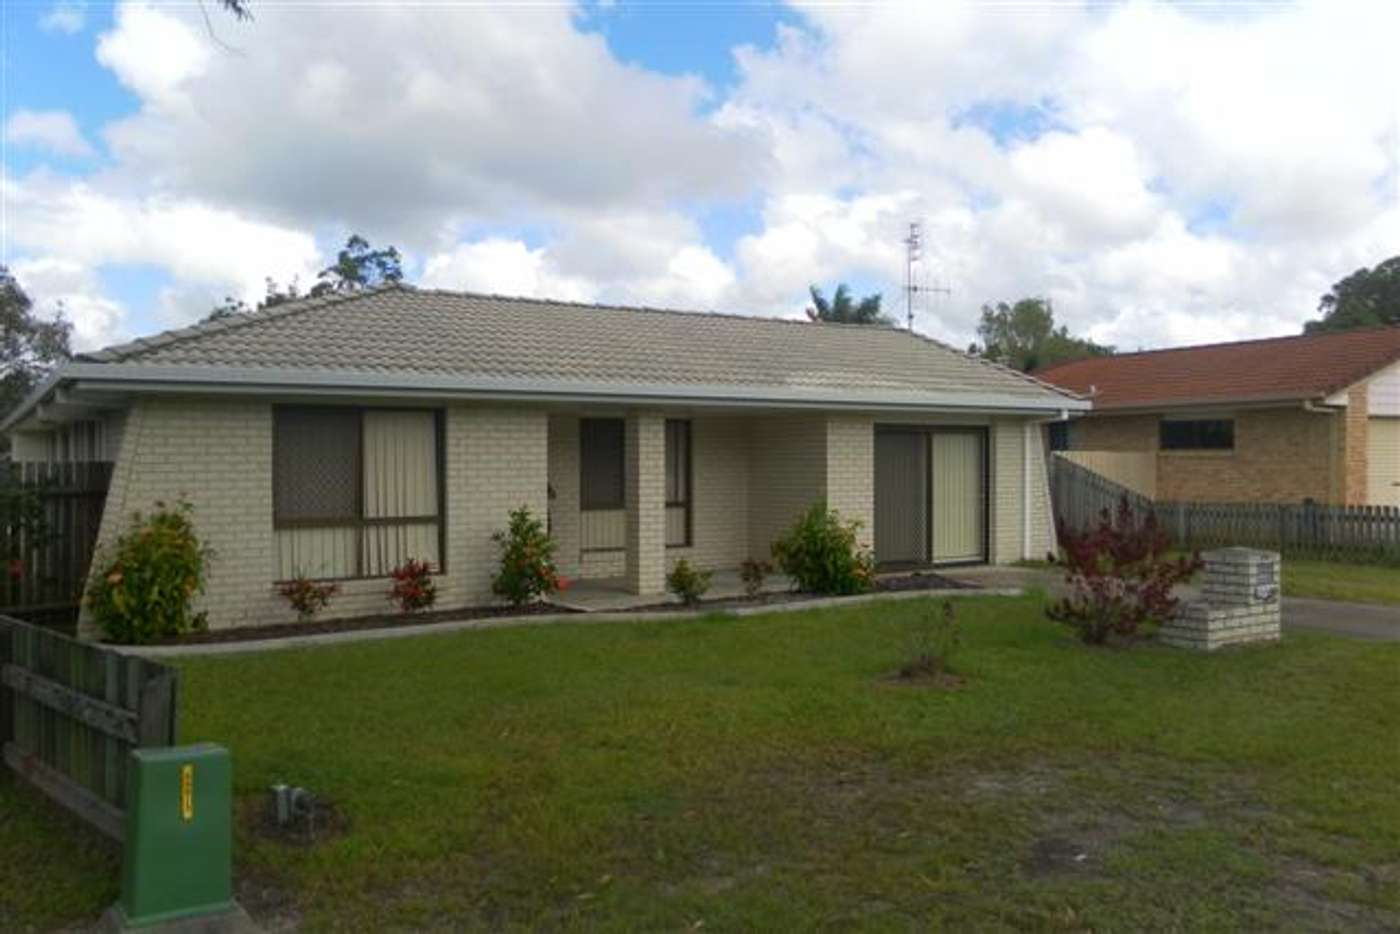 Main view of Homely house listing, 22 Melaleuca Crescent, Kawungan QLD 4655